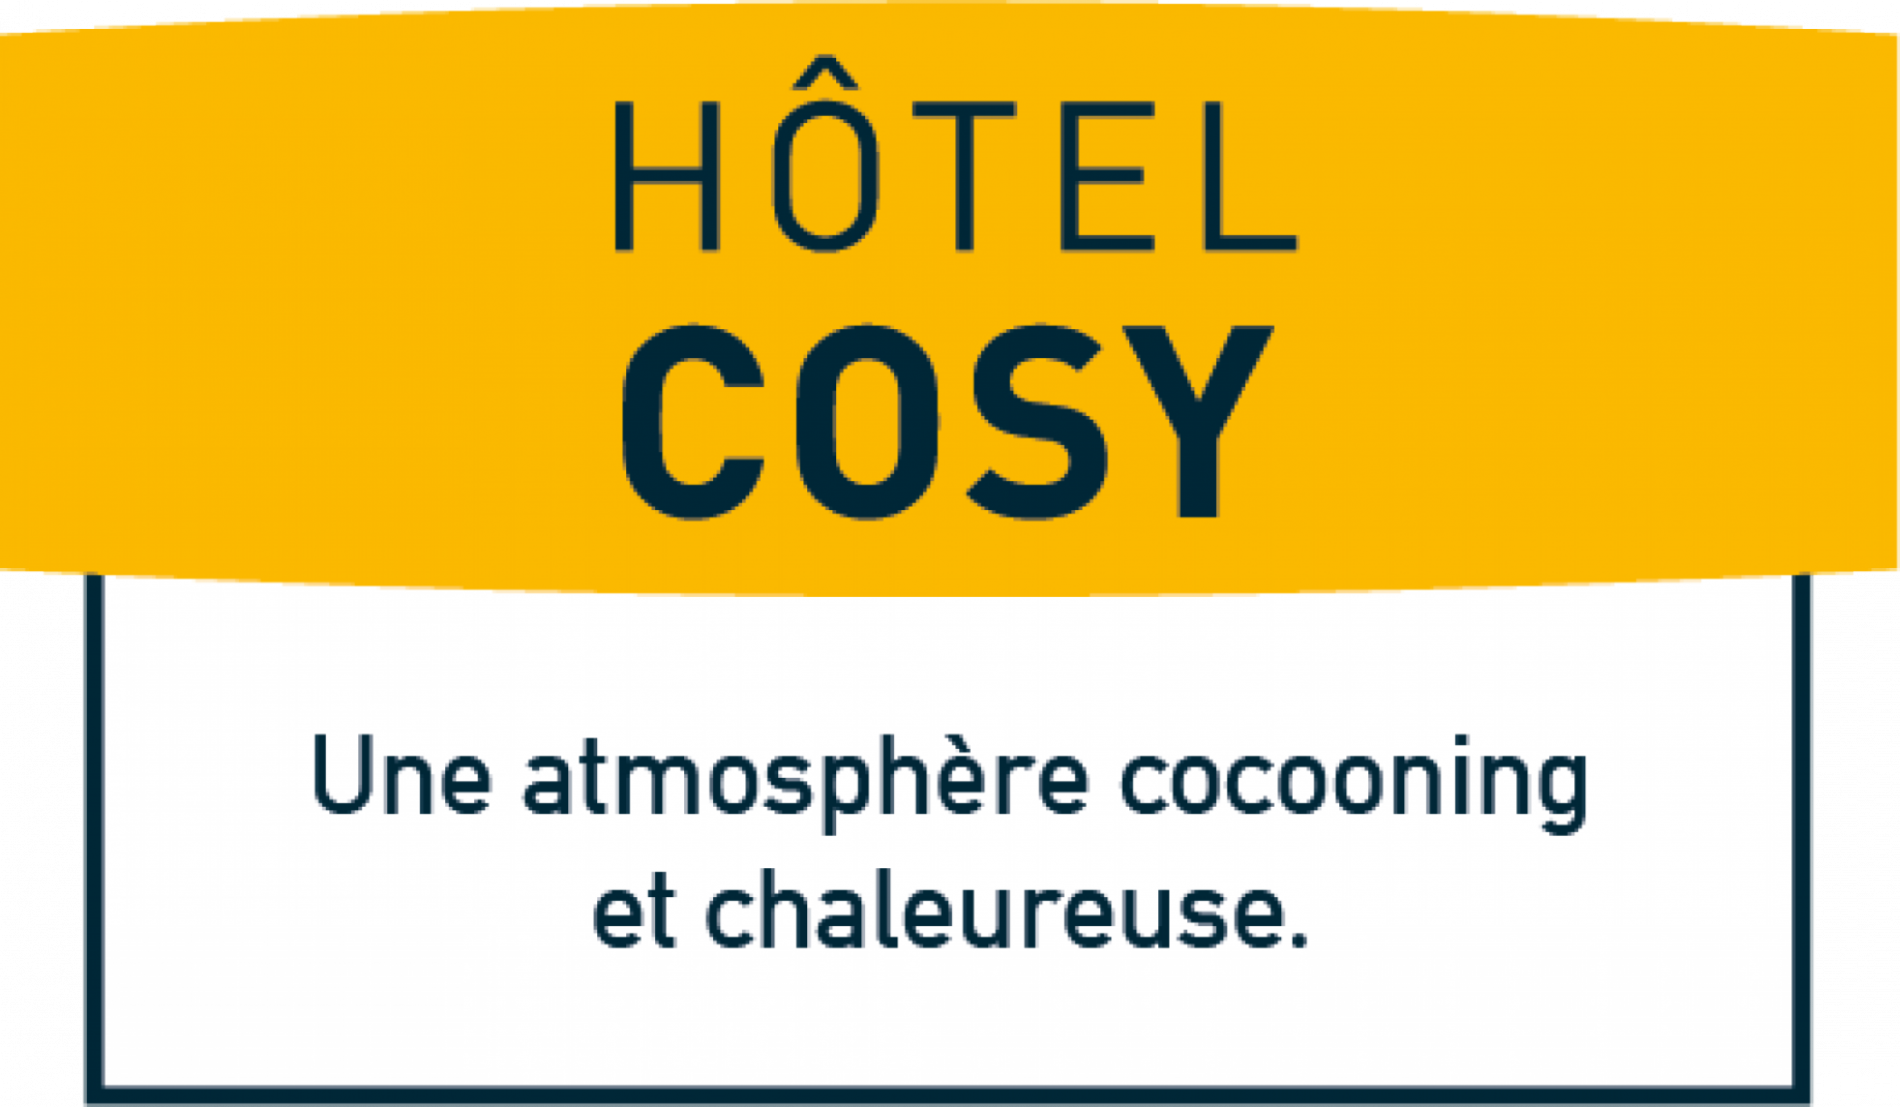 Logis Hotel Cosy Le Moulin Cavier à Avrille Angers